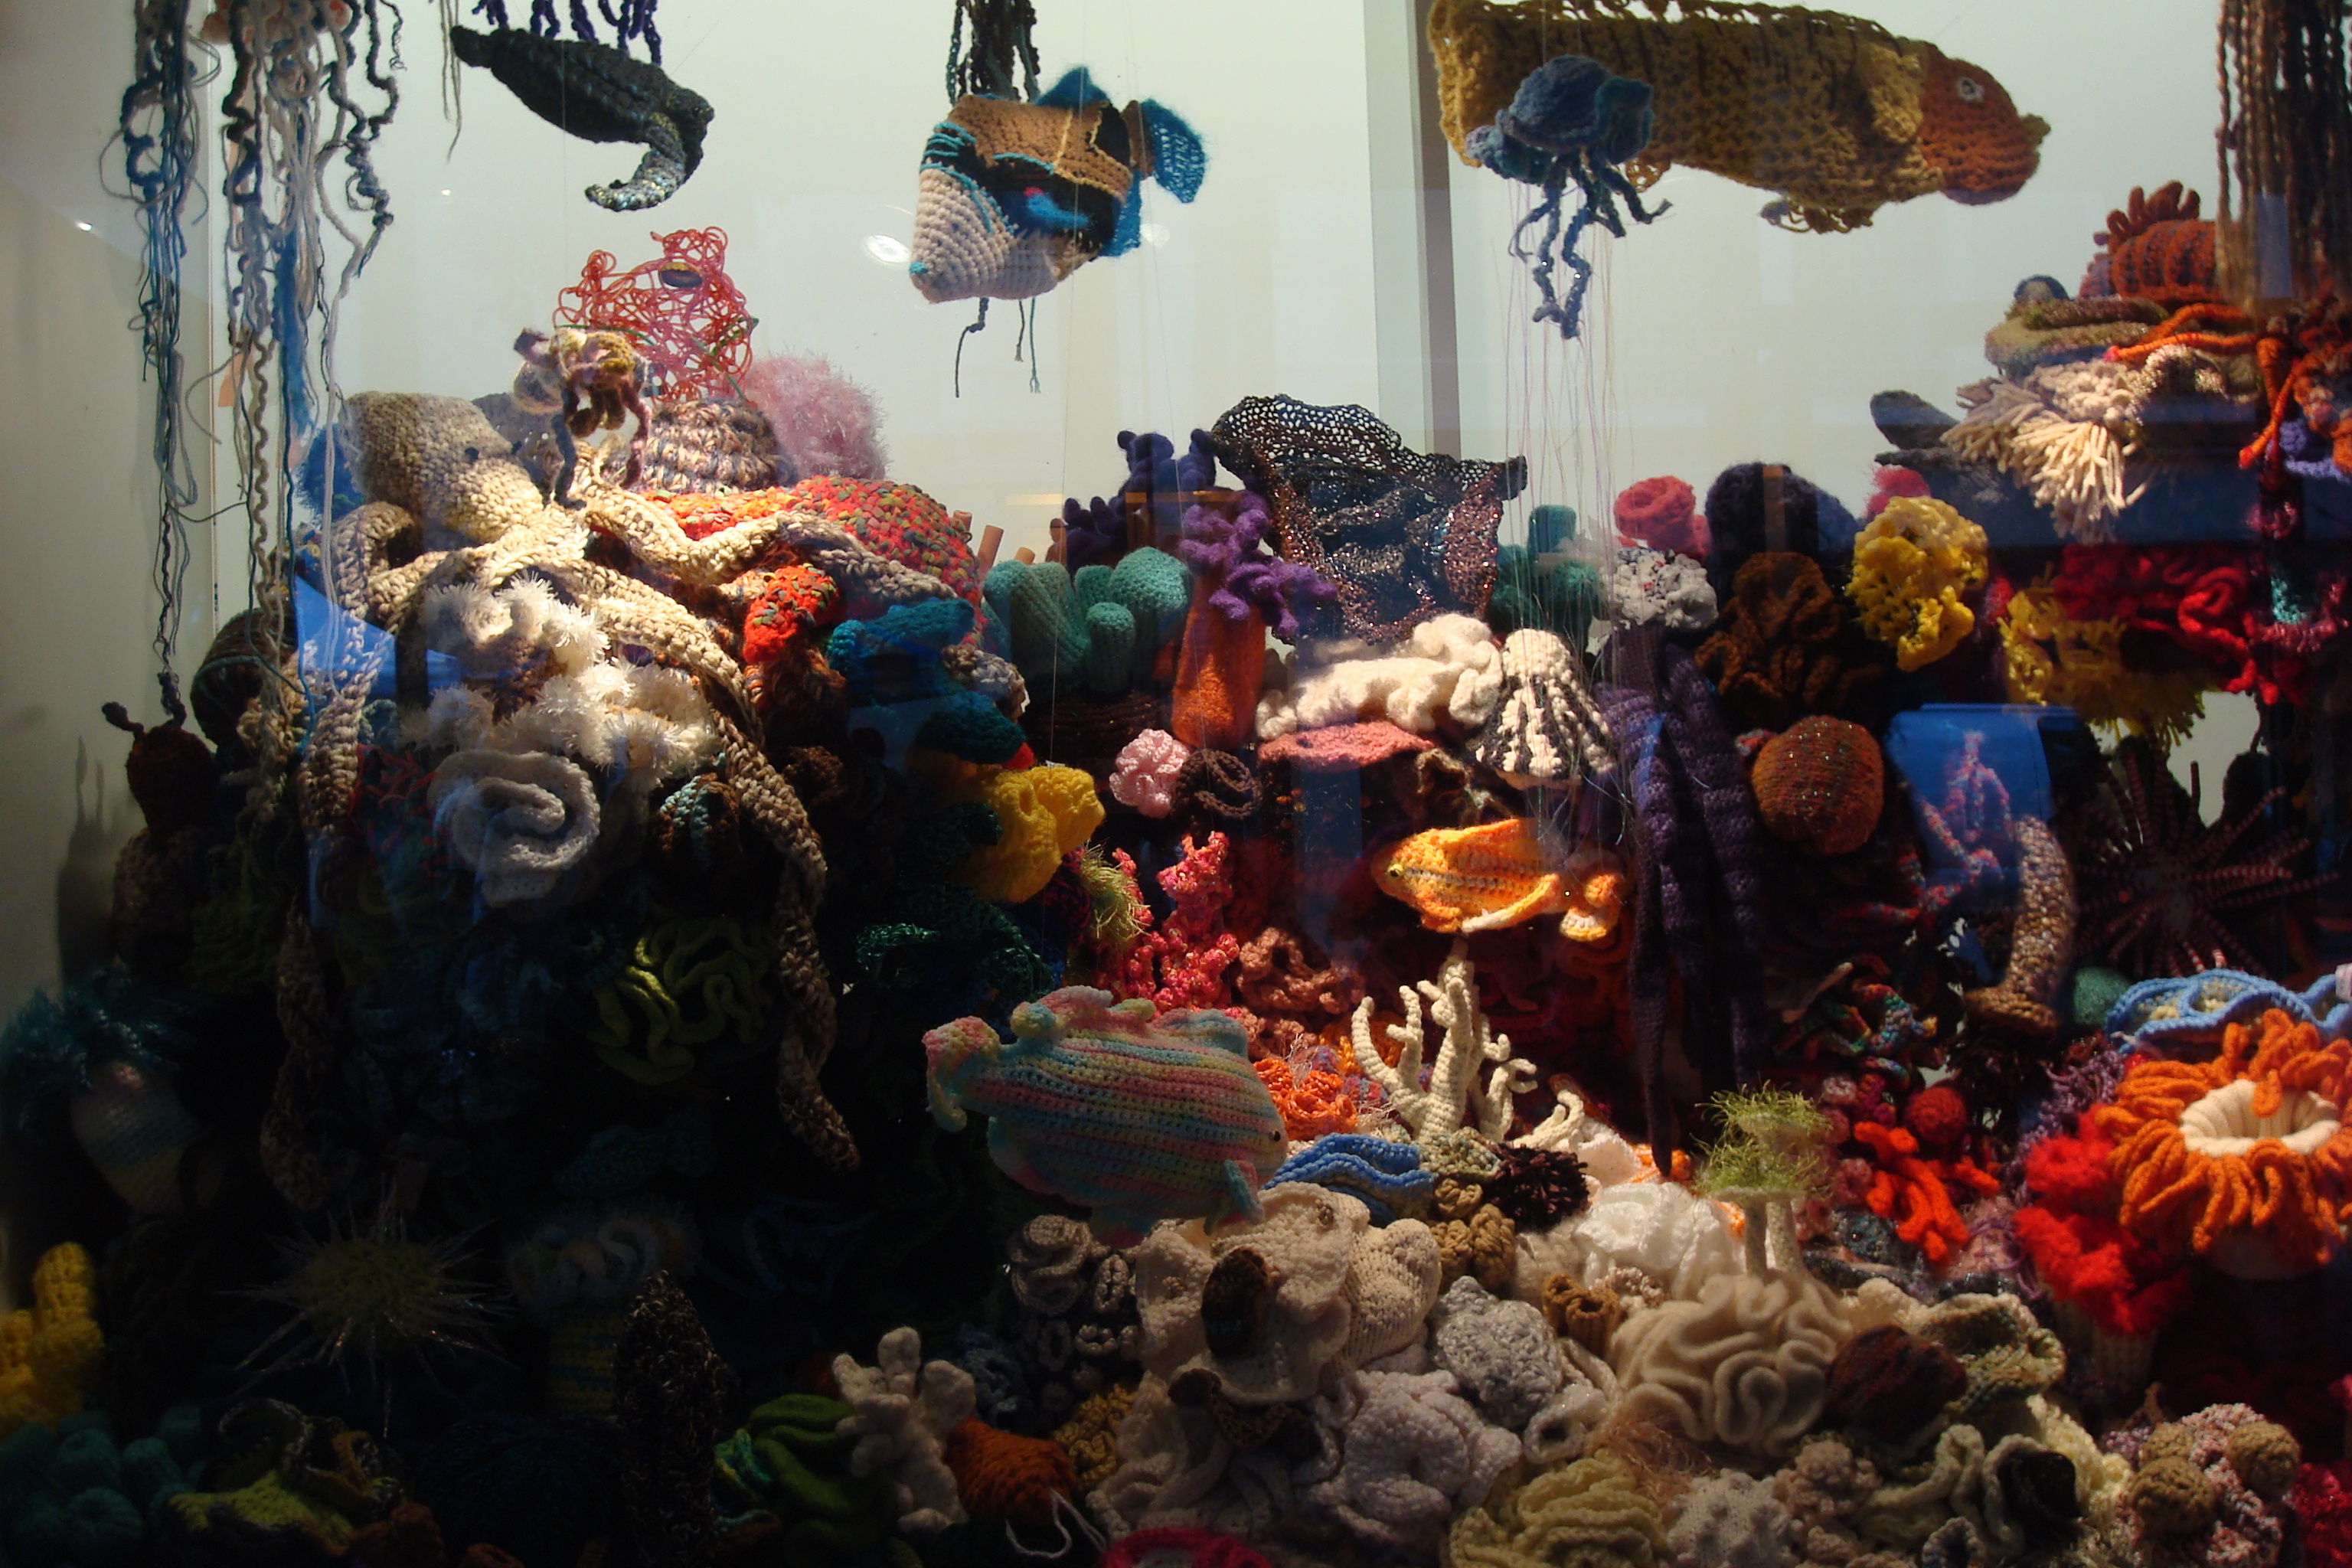 The Hawaii Hyperbolic Crochet Coral Reef Exhibit